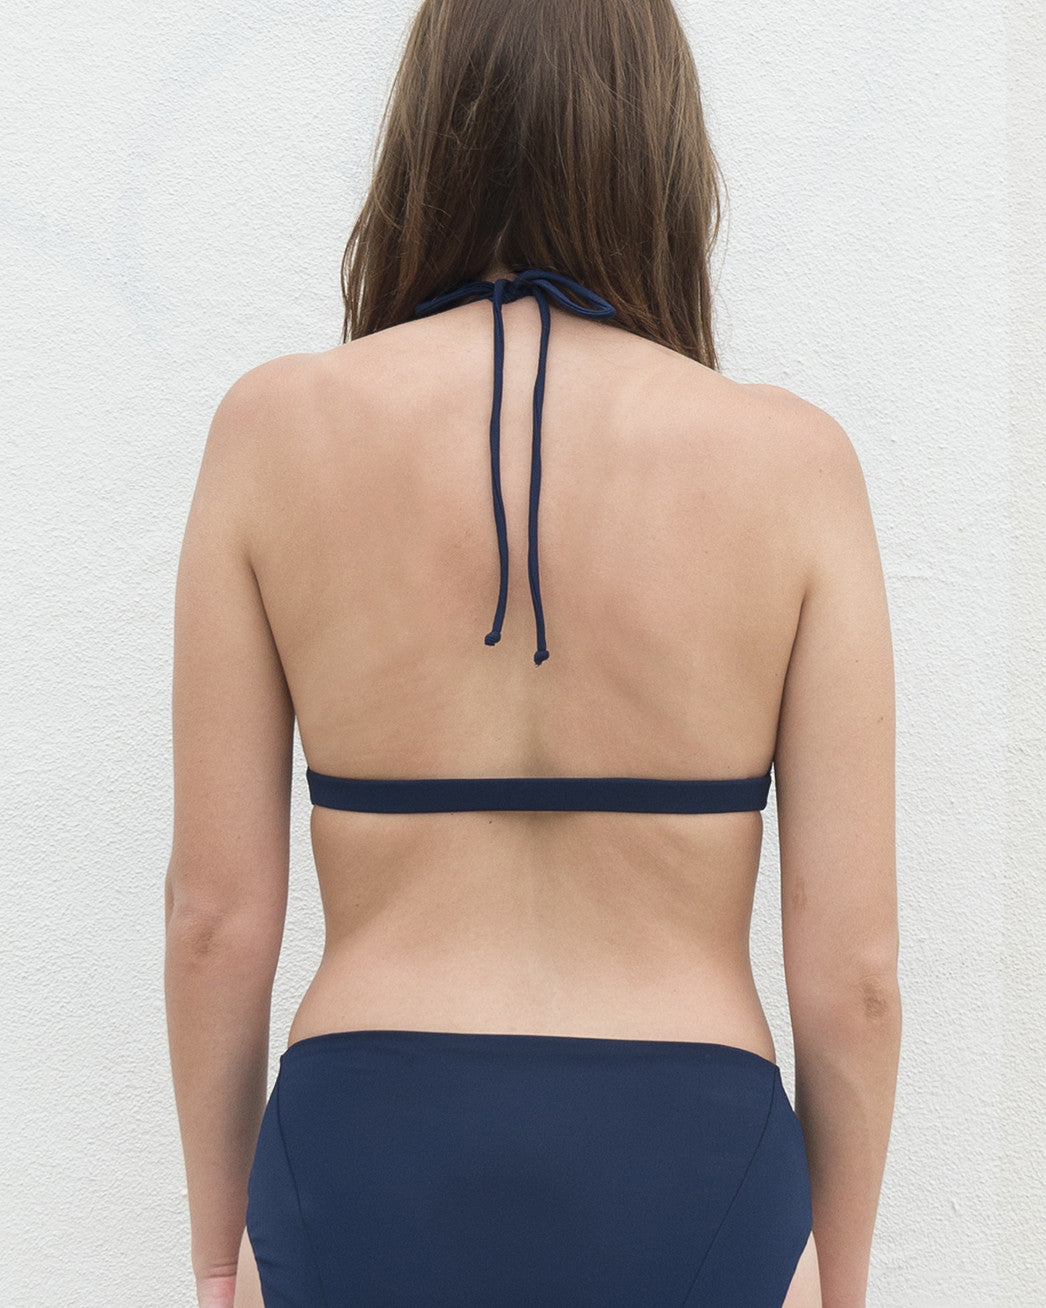 esby-apparel-swimwear-designed-in-austin-made-in-usa-sasha-halter-top-midnight